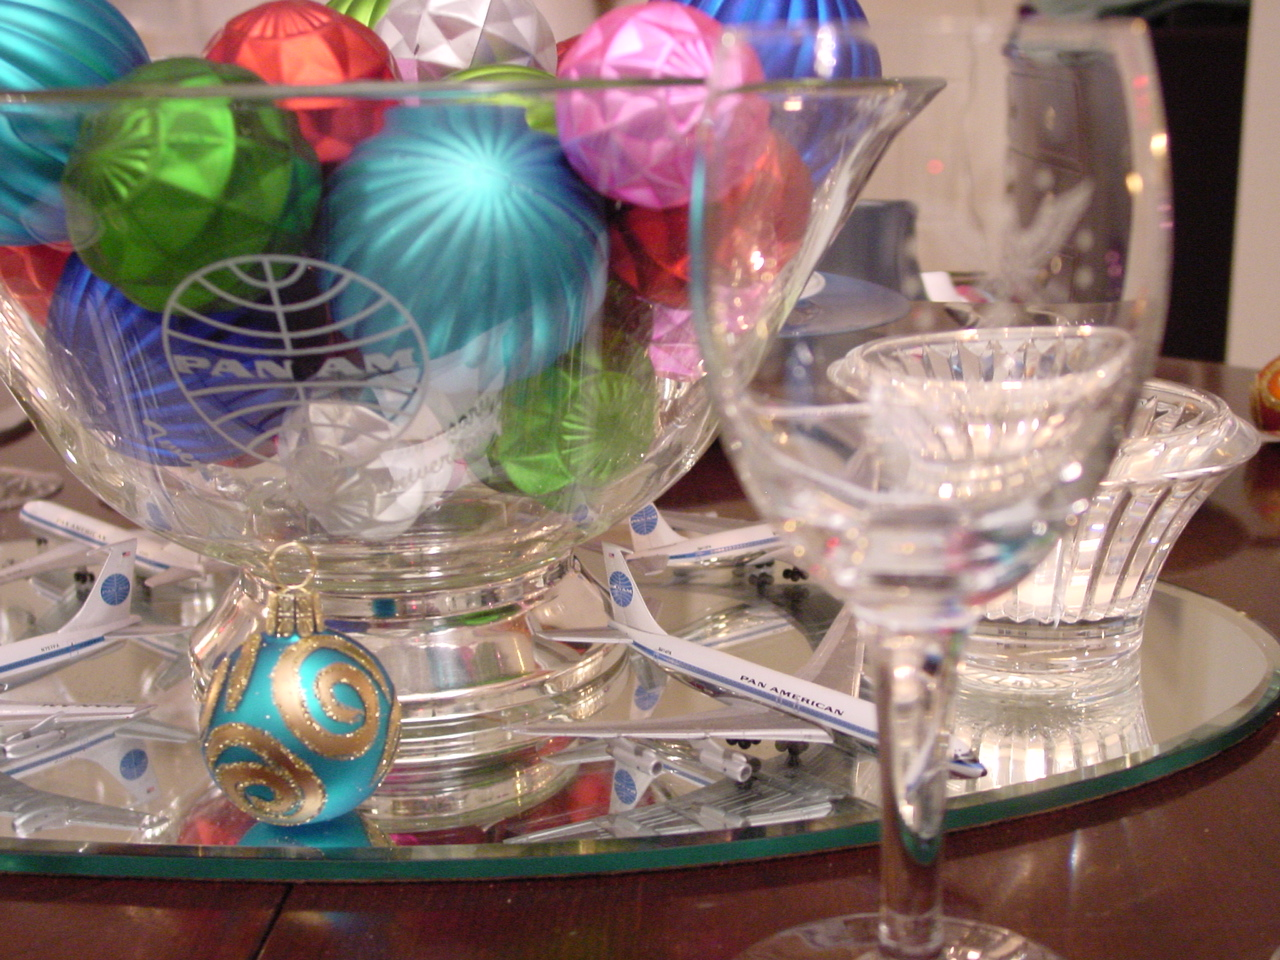 Mini models and glass balls are used as a center piece with a 1960s 'President' pattern setting.